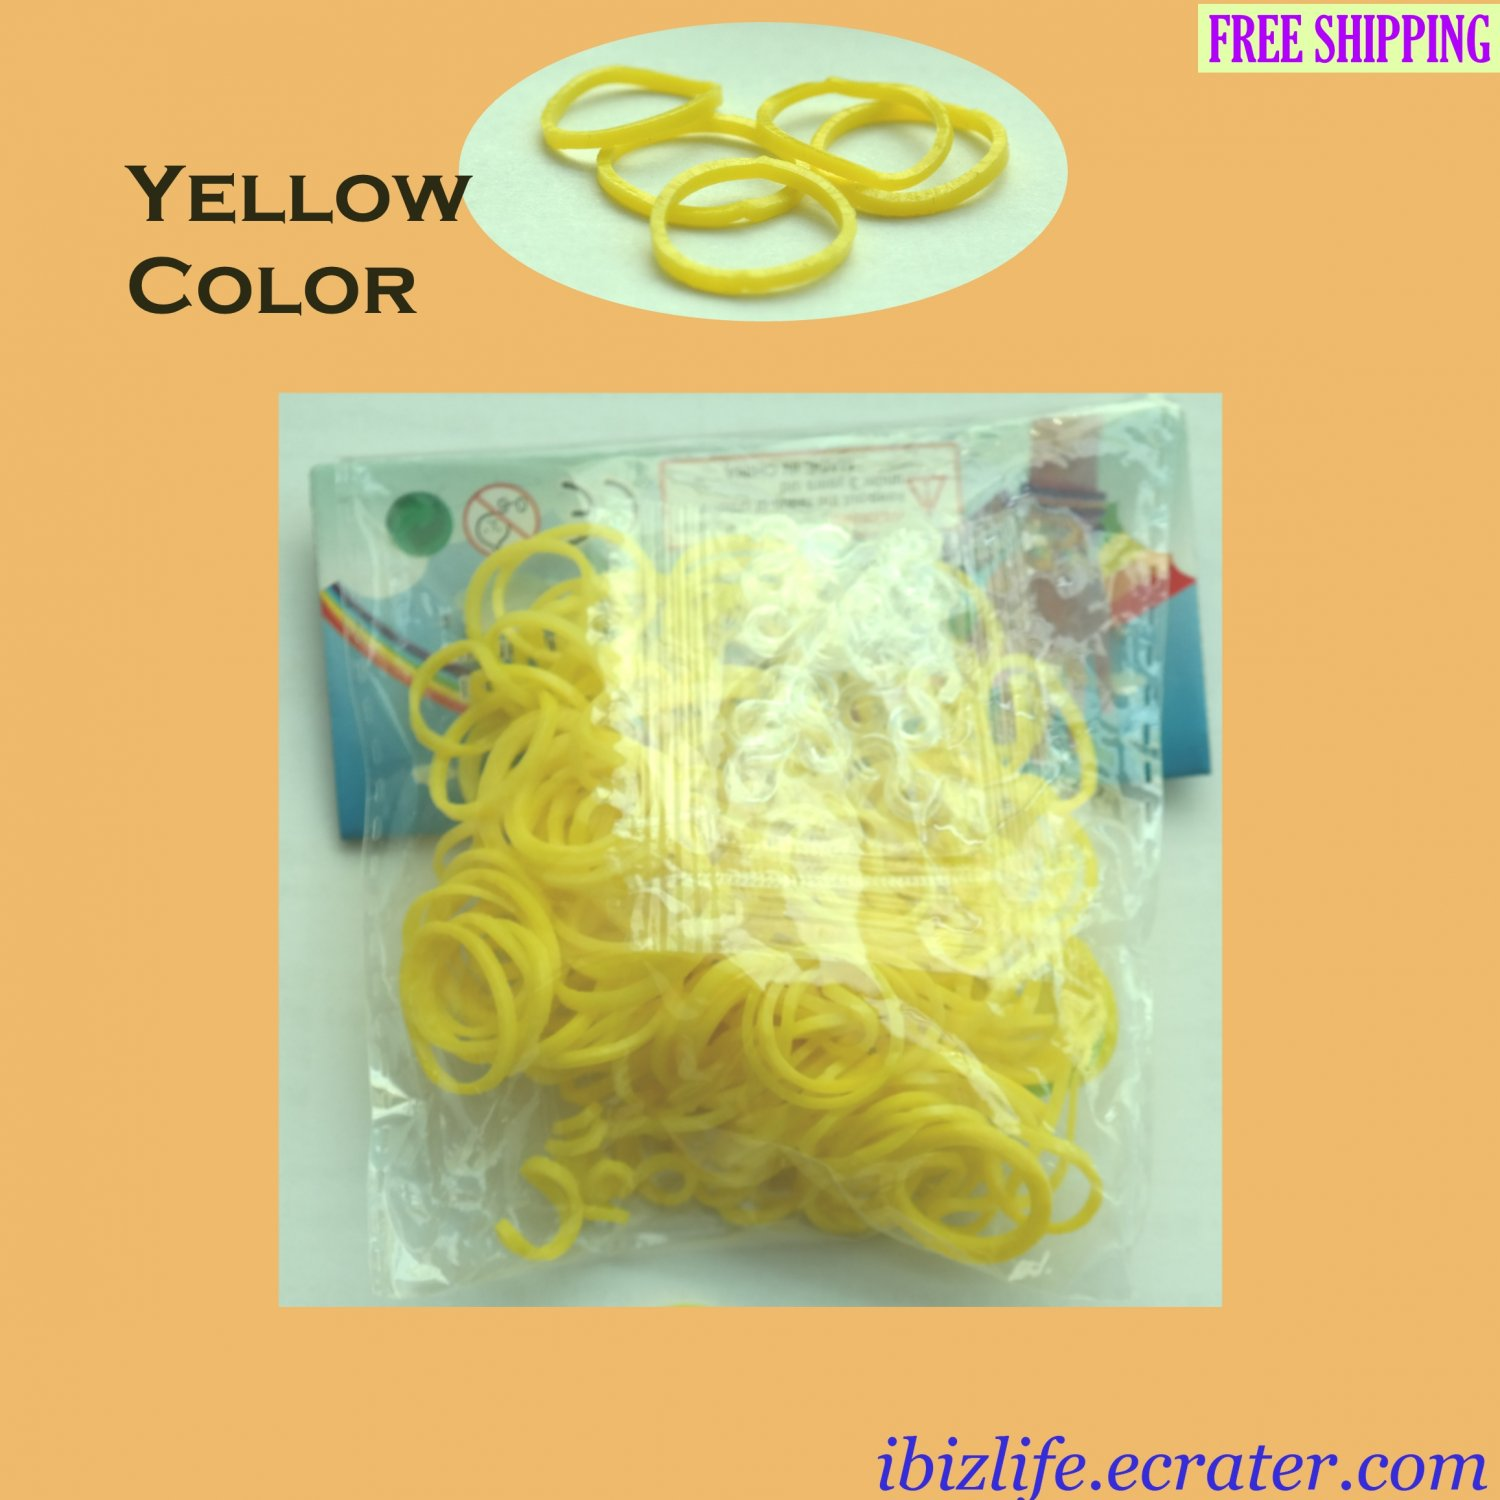 RAINBOW LOOM RUBBER BAND REFILL with 600 bands (Yellow color) & 24 Clips (RL21)